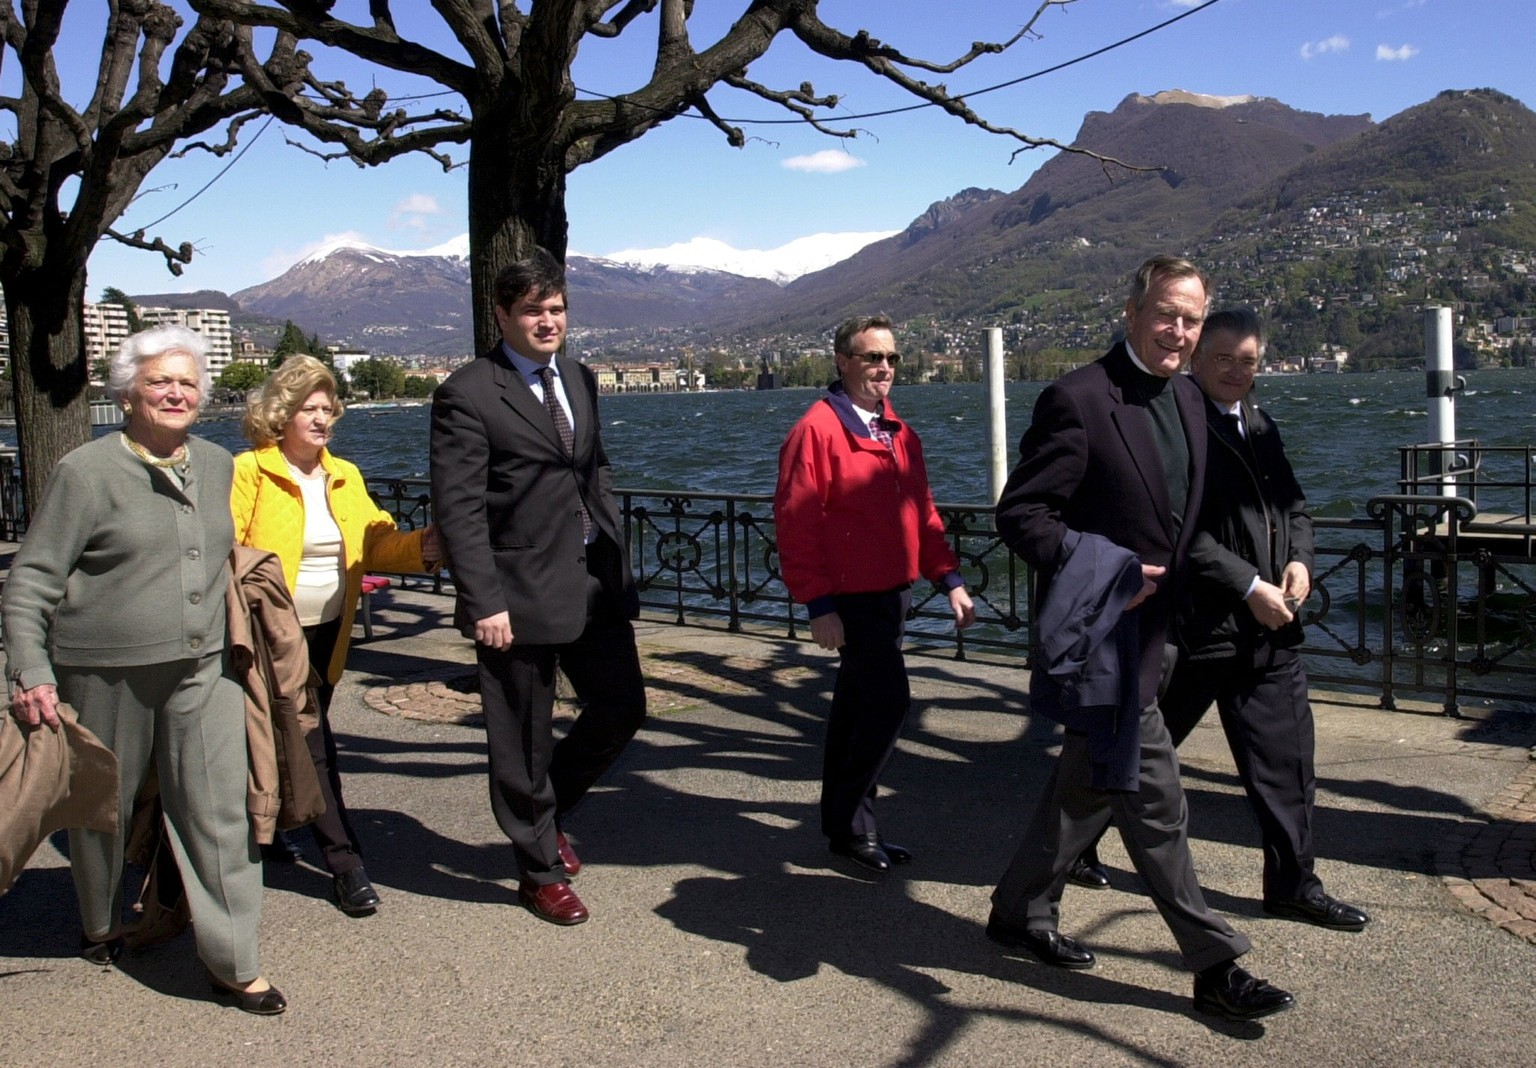 ARCHIV -- ZUM HEUTE VERSTORBENEN EHEMALIGEN US PRAESIDENT GEORGE BUSH,  STELLEN WIR IHNEN FOLGENDES BILDMATERIAL ZUR VERFUEGUNG -- Former US president George Bush, second right, and his wife Barbara, left, walk along the shores of Lake Lugano, Switzerland, with the Monte Bre in the background, Thursday, April 5, 2001. The other people are unidentified. Bush is on a privat visit to Lugano. (KEYSTONE/Karl Mathis) ===ELECTRONIC IMAGE===